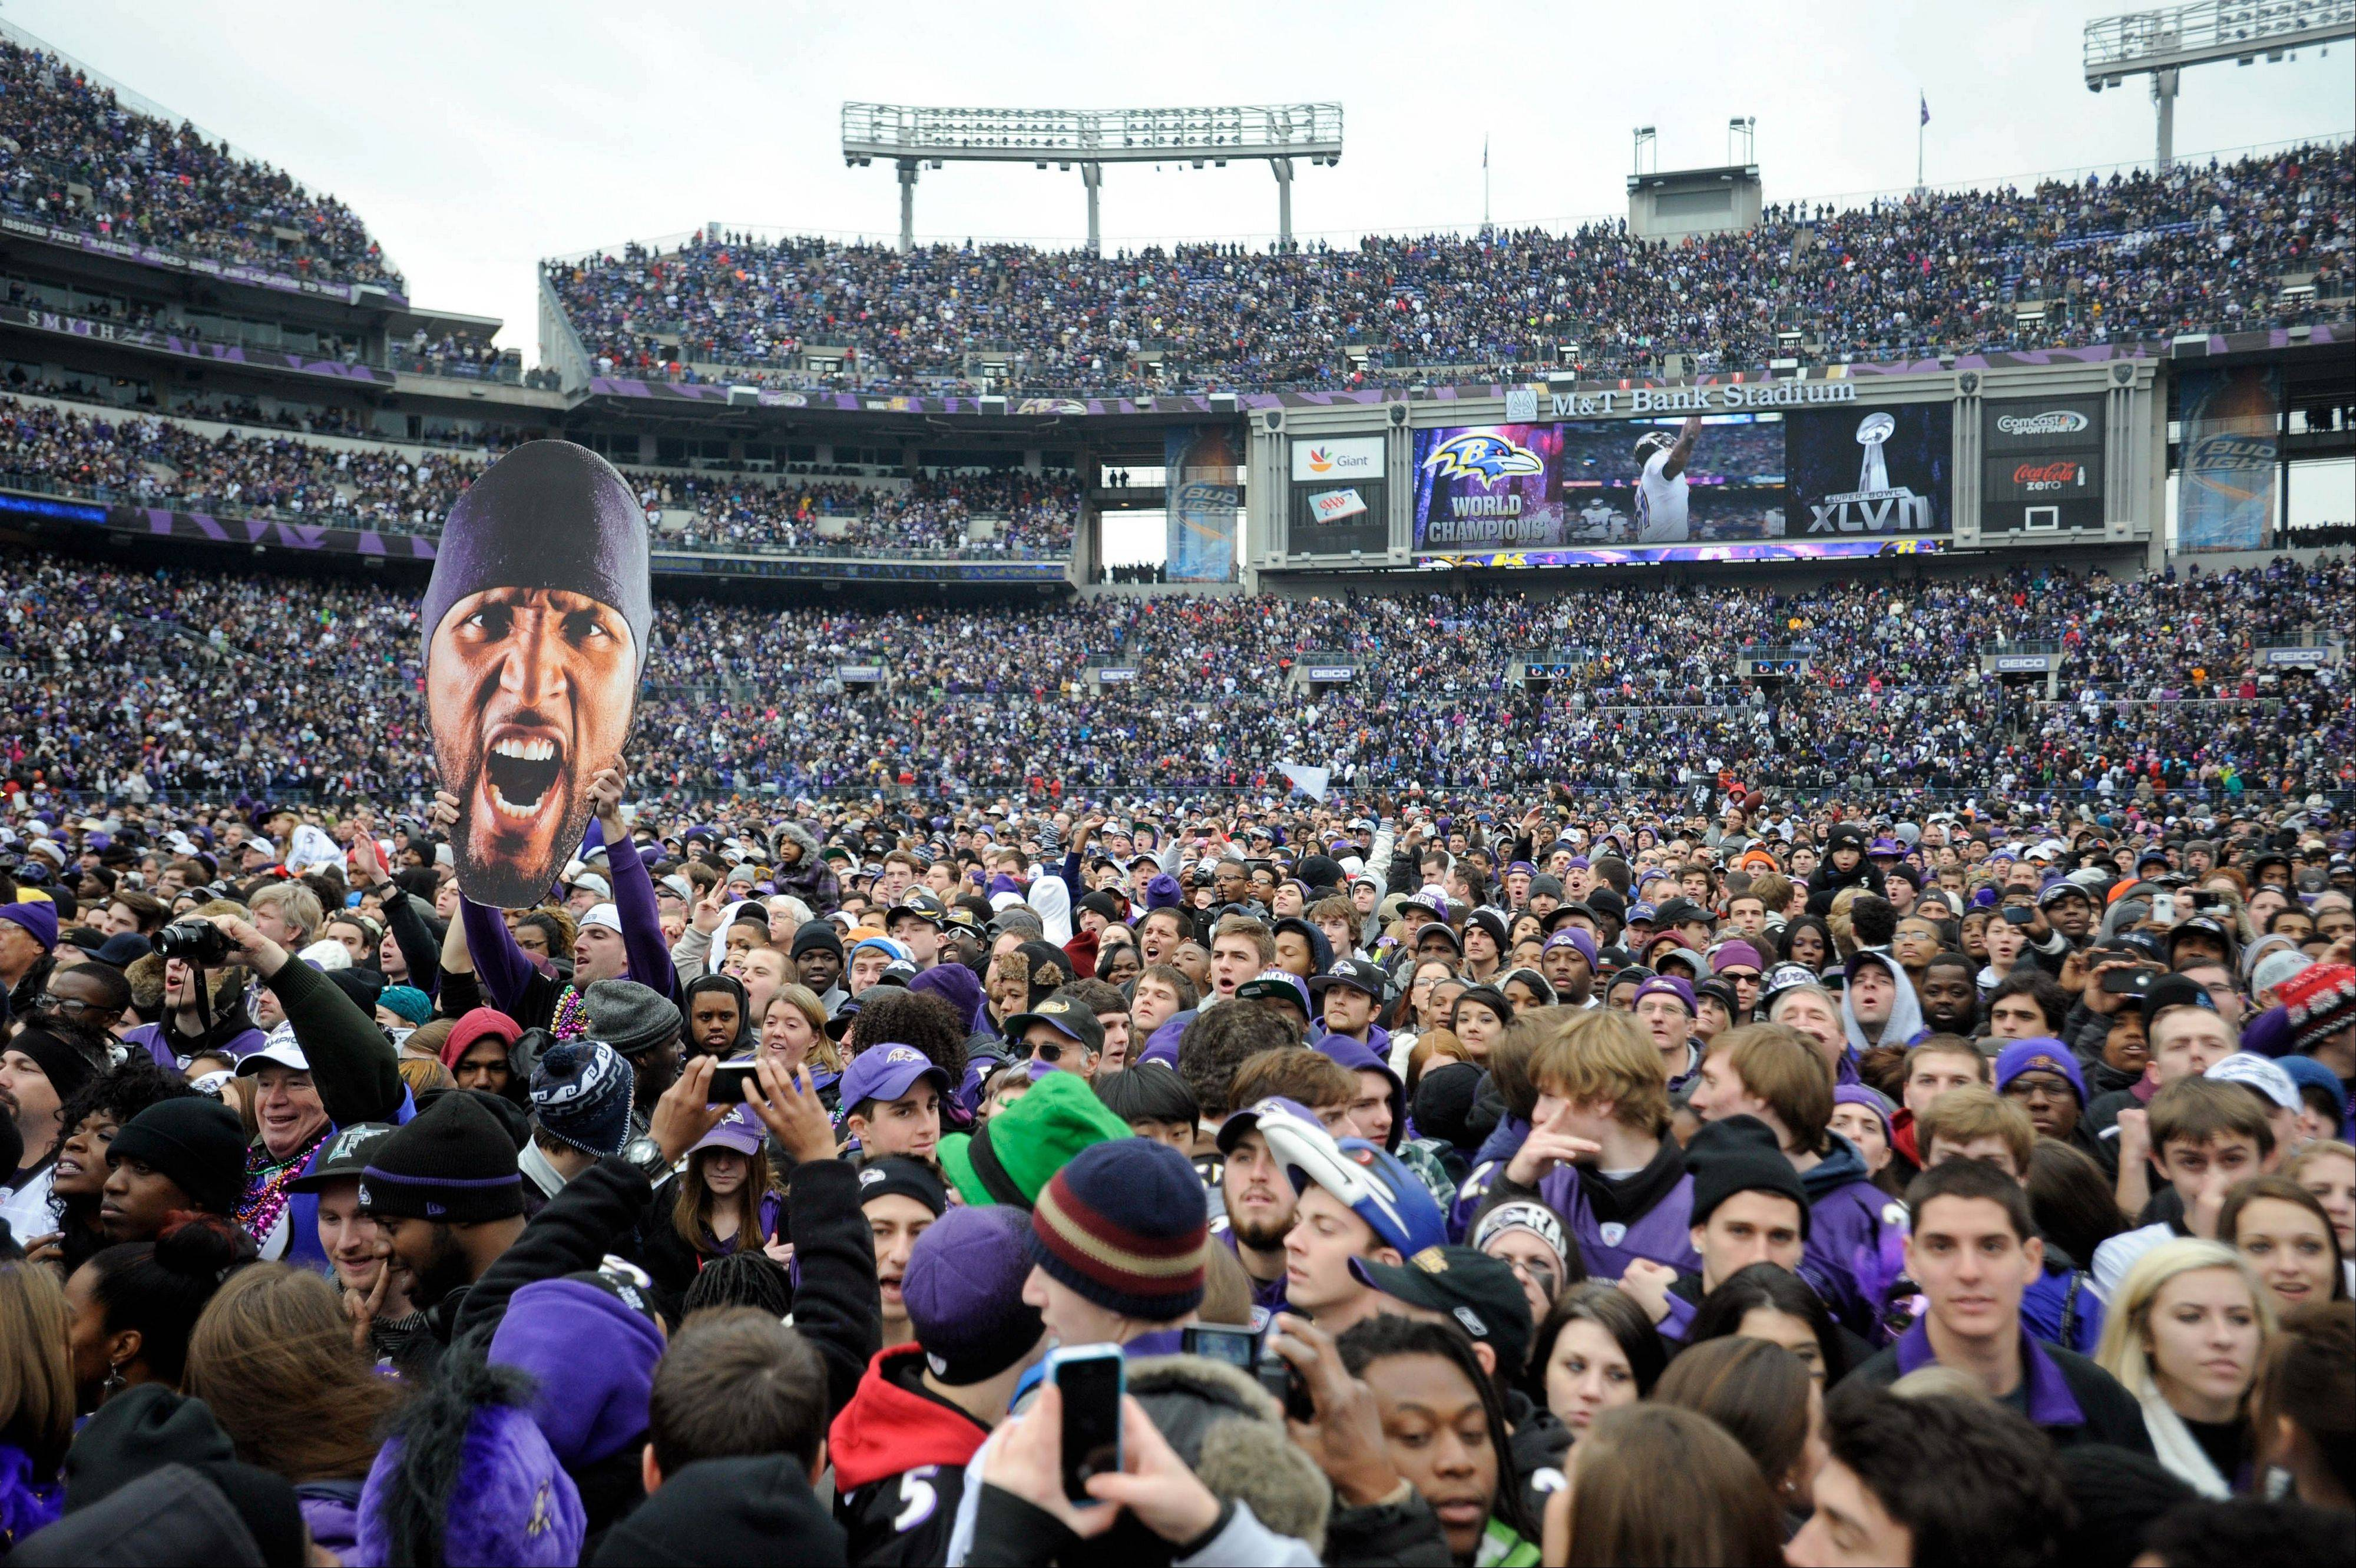 Thousands of Baltimore Ravens NFL football fans fill M&T Bank Stadium celebrate the team's Super Bowl championship during a rally in Baltimore on Tuesday, Feb. 5, 2013. The Ravens defeated the San Francisco 49ers 34-31 in New Orleans on Sunday.